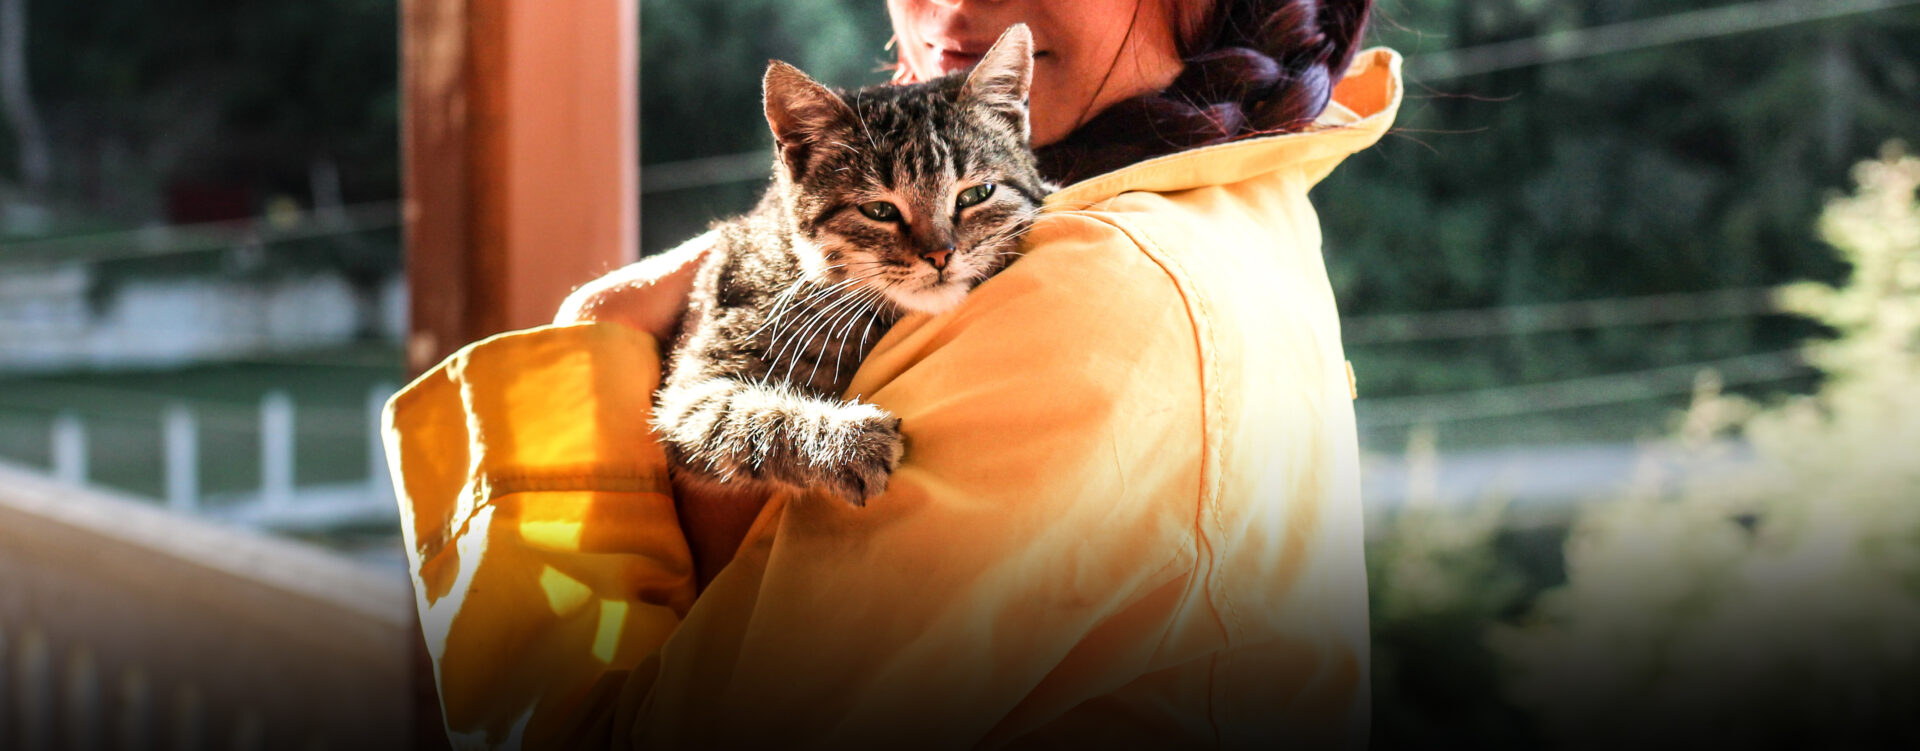 Cat Training – What you need to know as a cat owner - 4